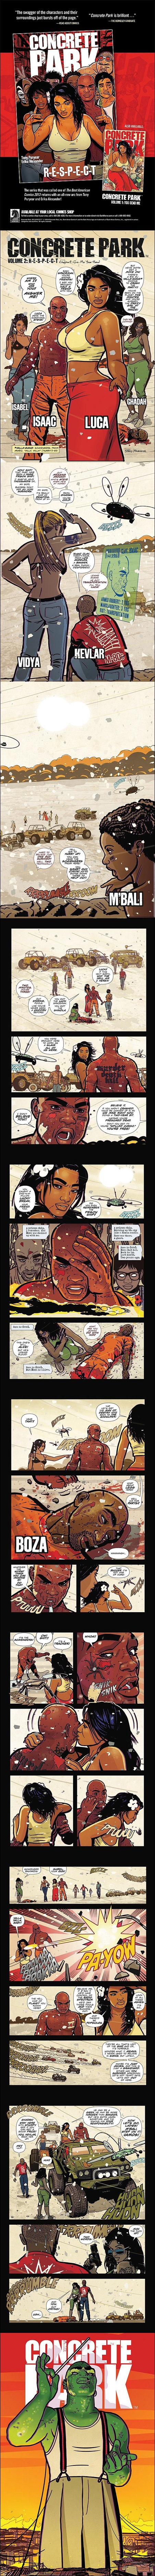 Concrete Park #1 Preview